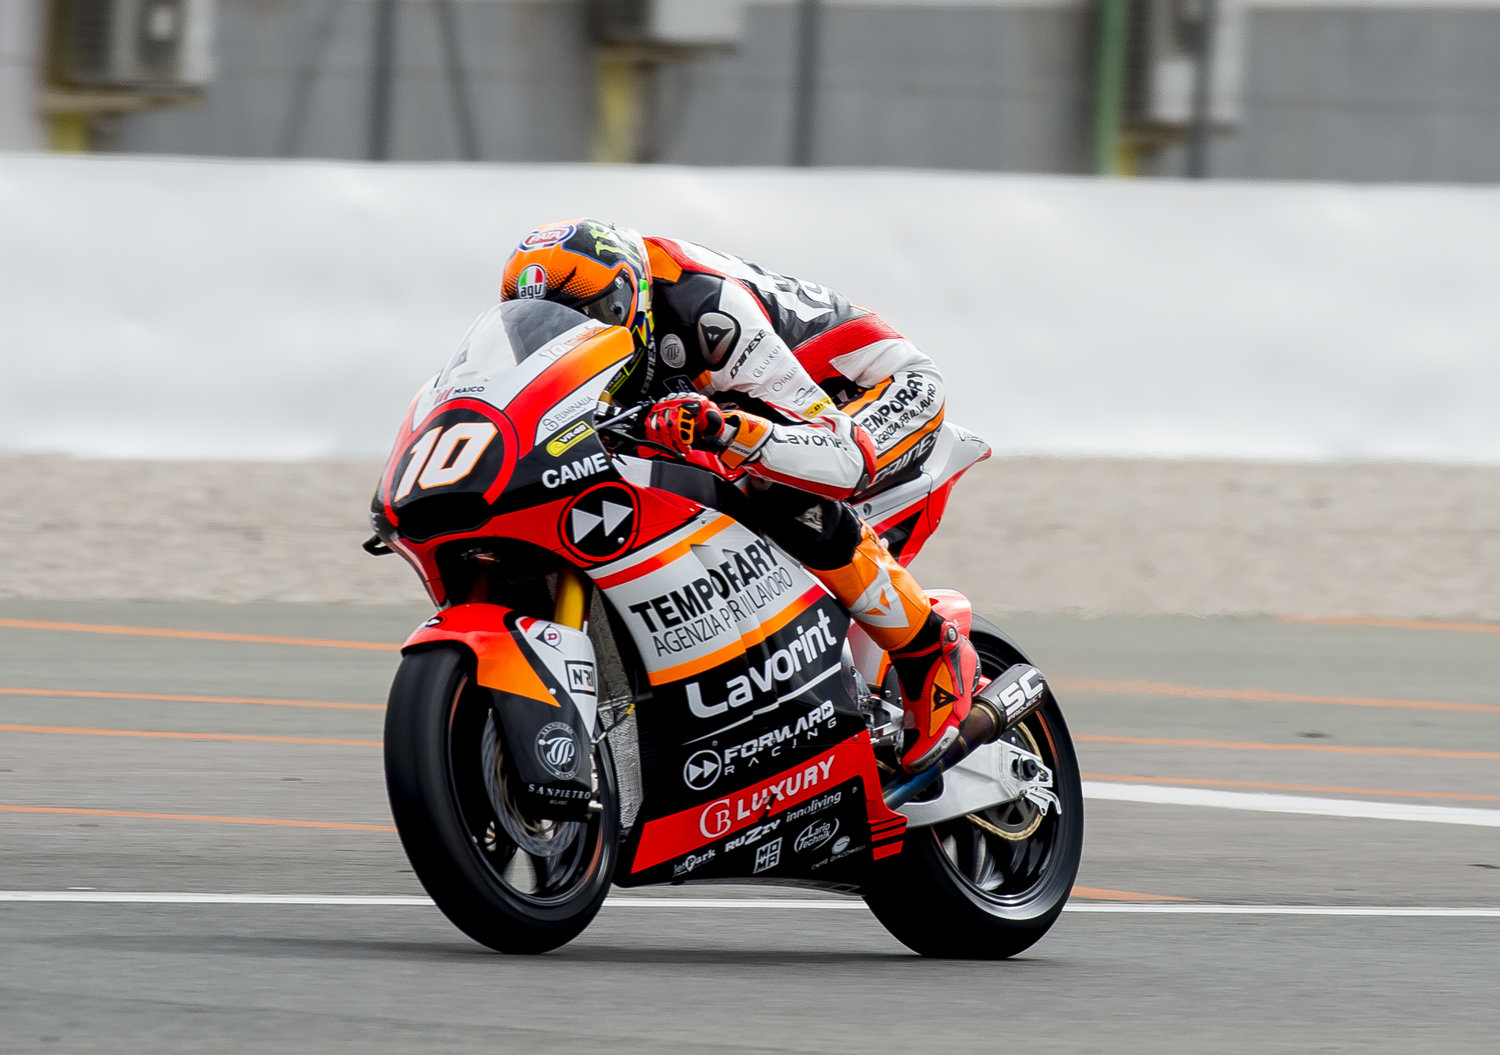 Promising first steps for Baldassarri and Marini in 2017